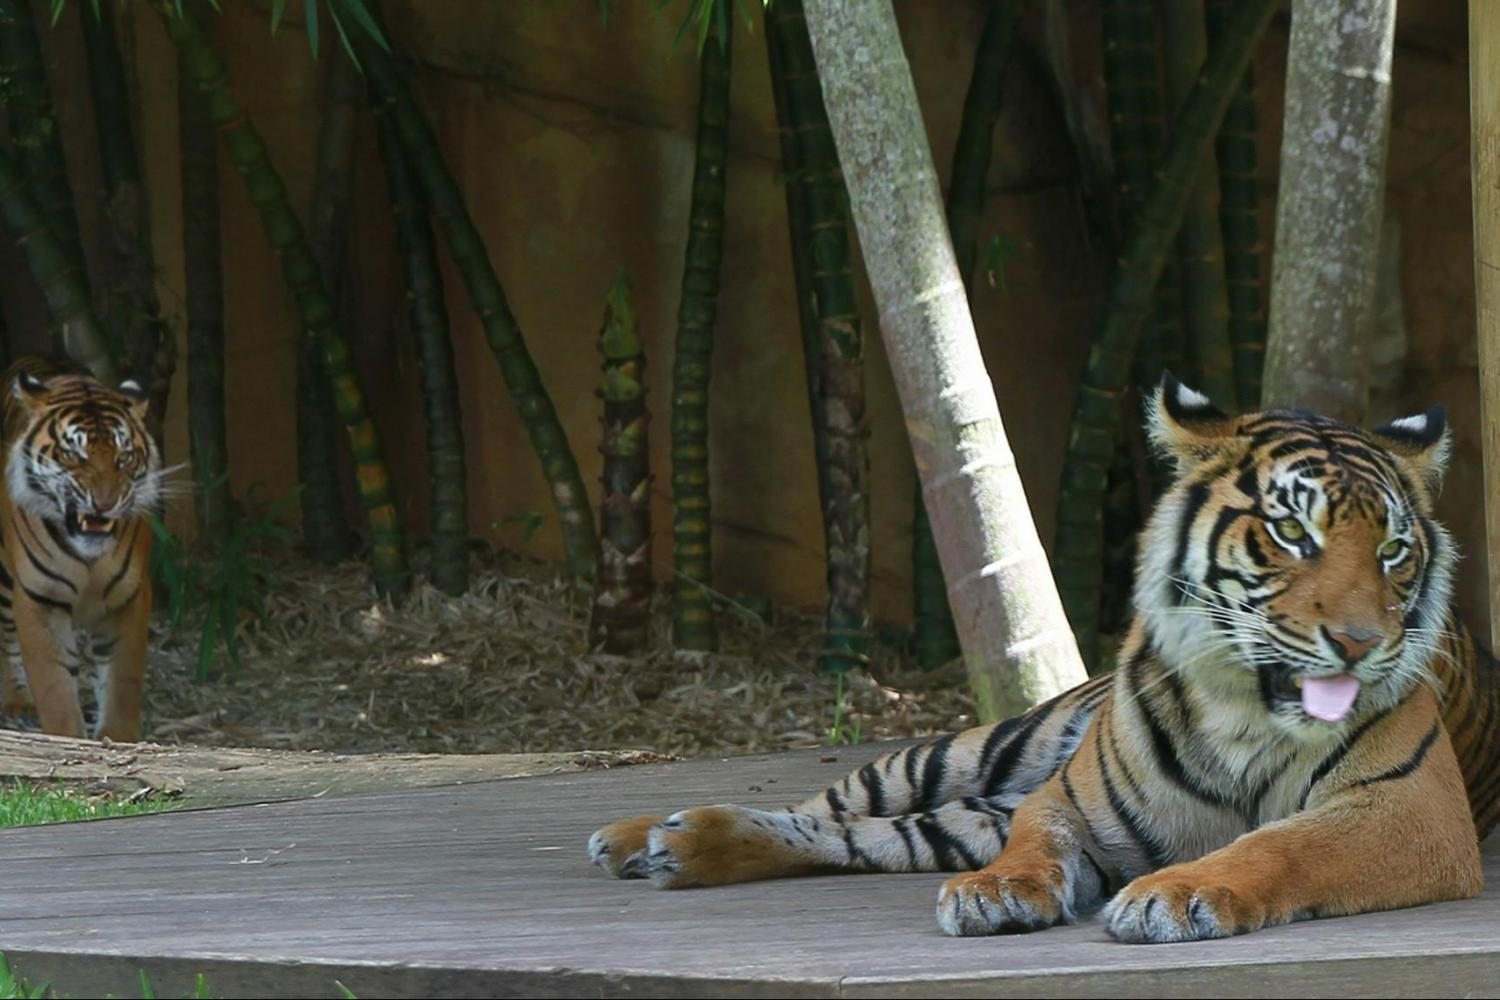 Visit the Tiger Temple - home to the critically endangered Sumatran and Bengal tigers